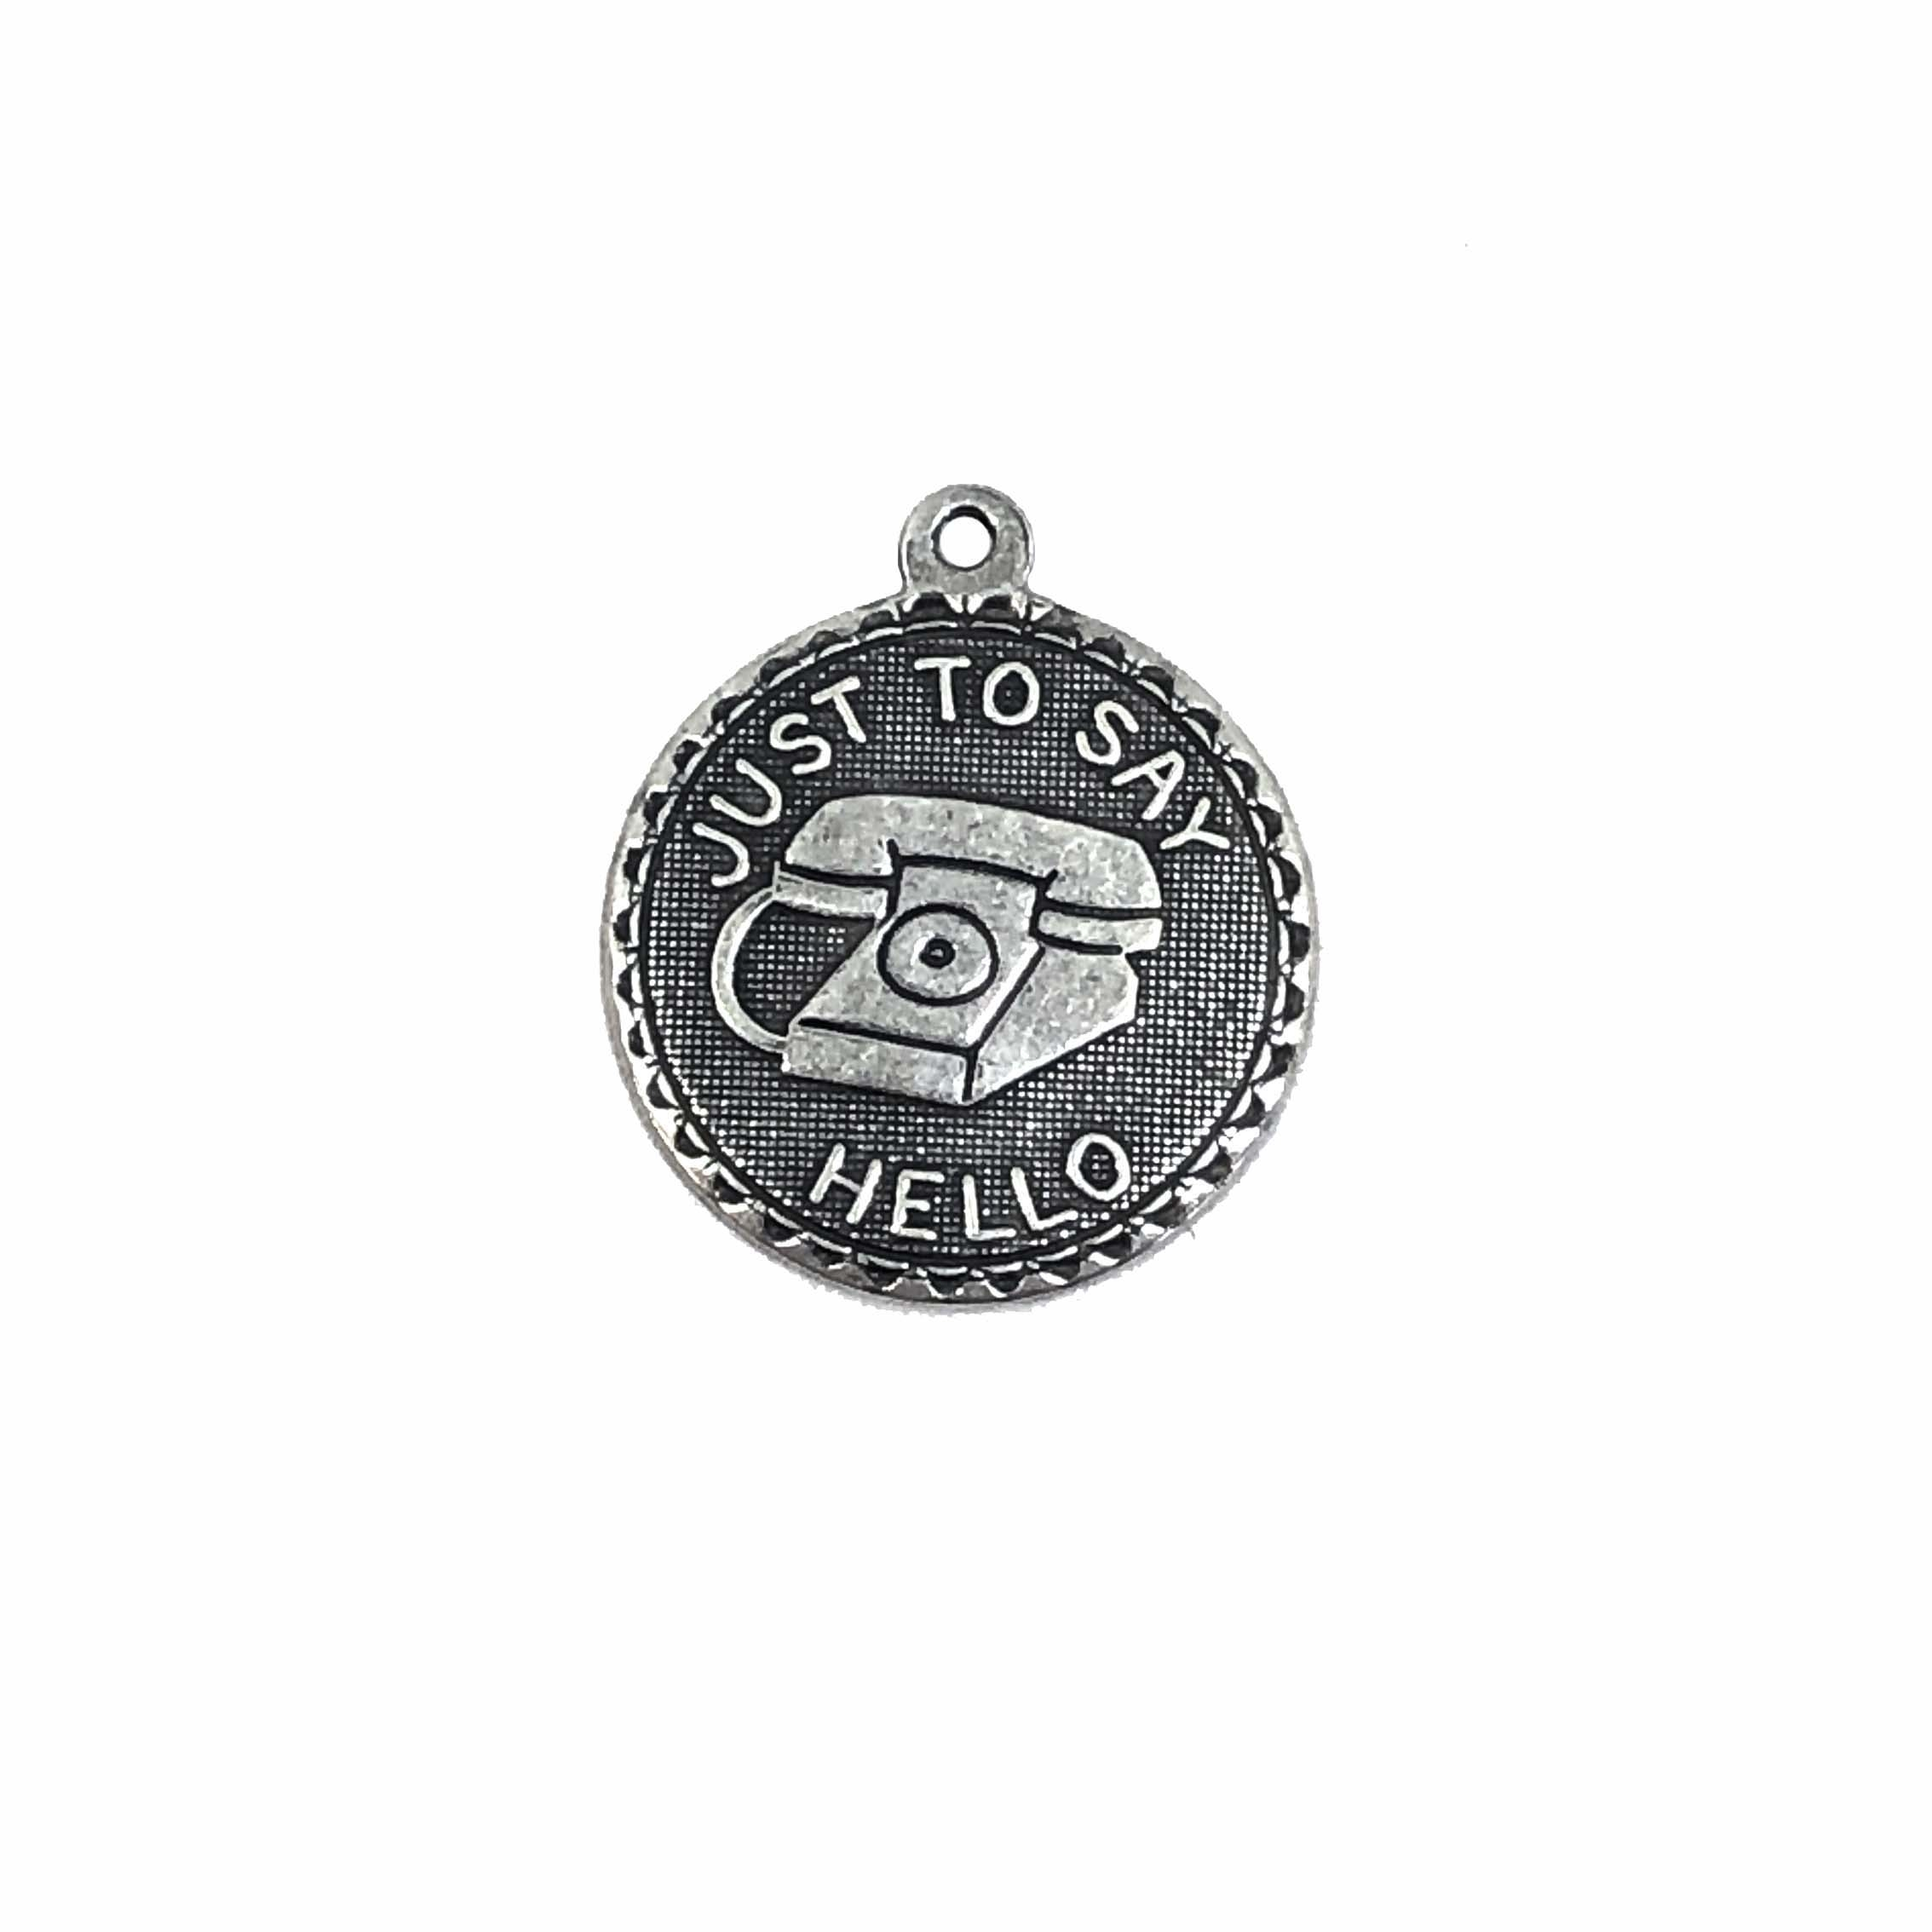 telephone charm, silverware silverplate, 06945, phone, silver charm, phone charm, old style phone, just to say hello, jewelry supplies